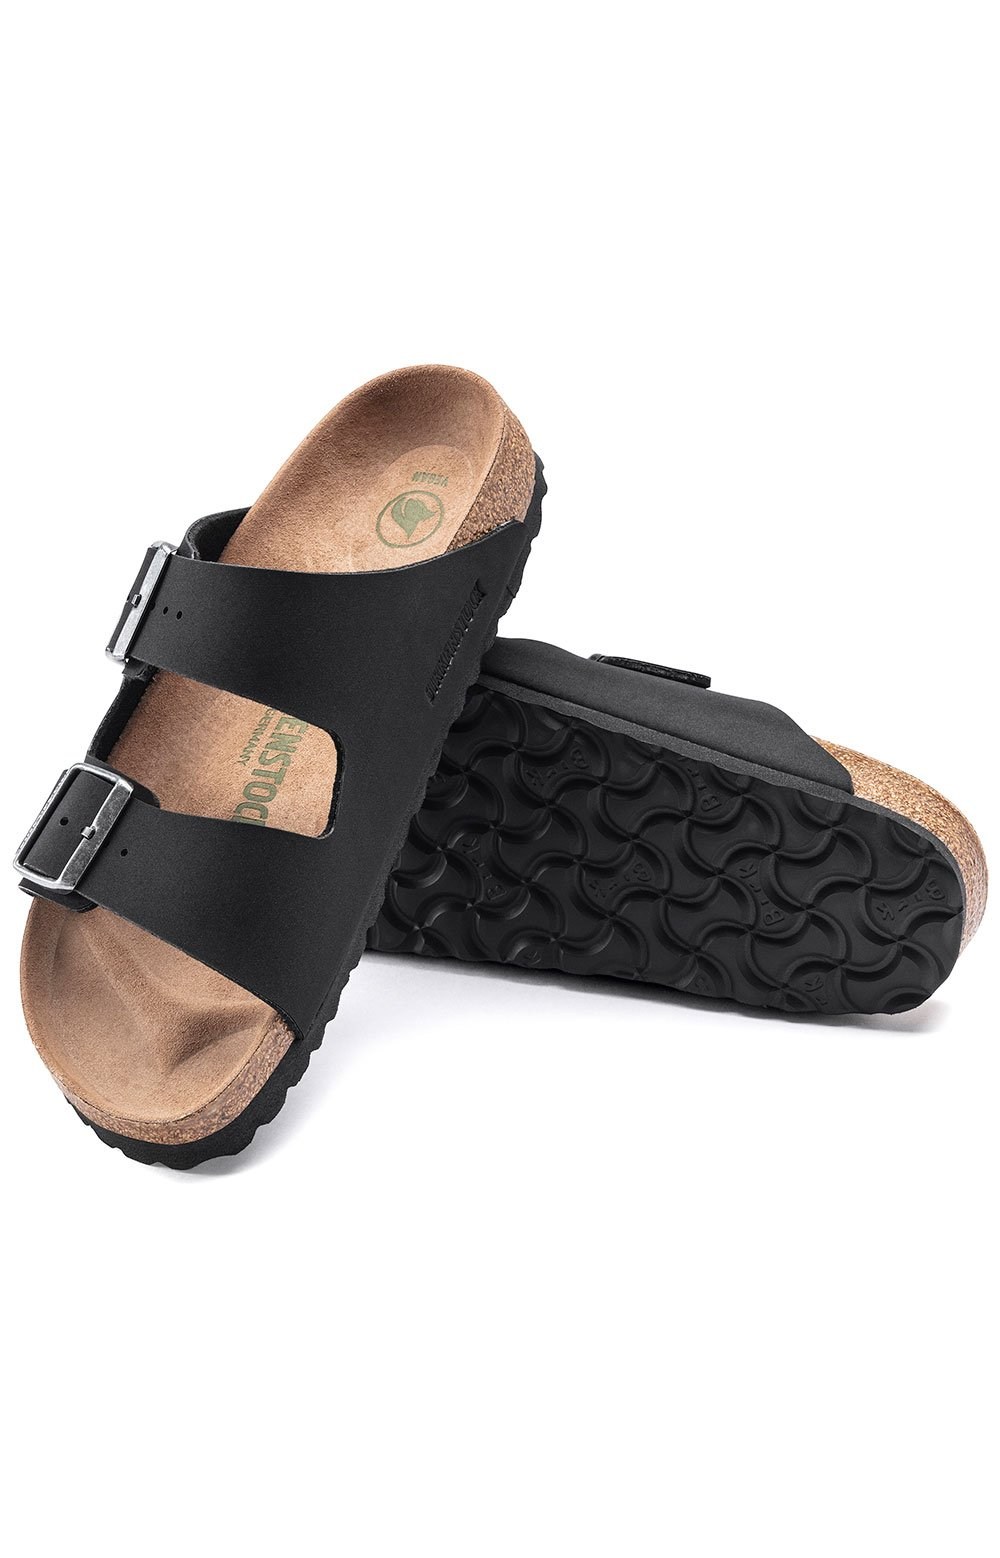 (1019115) Arizona Vegan Sandals - Black 4